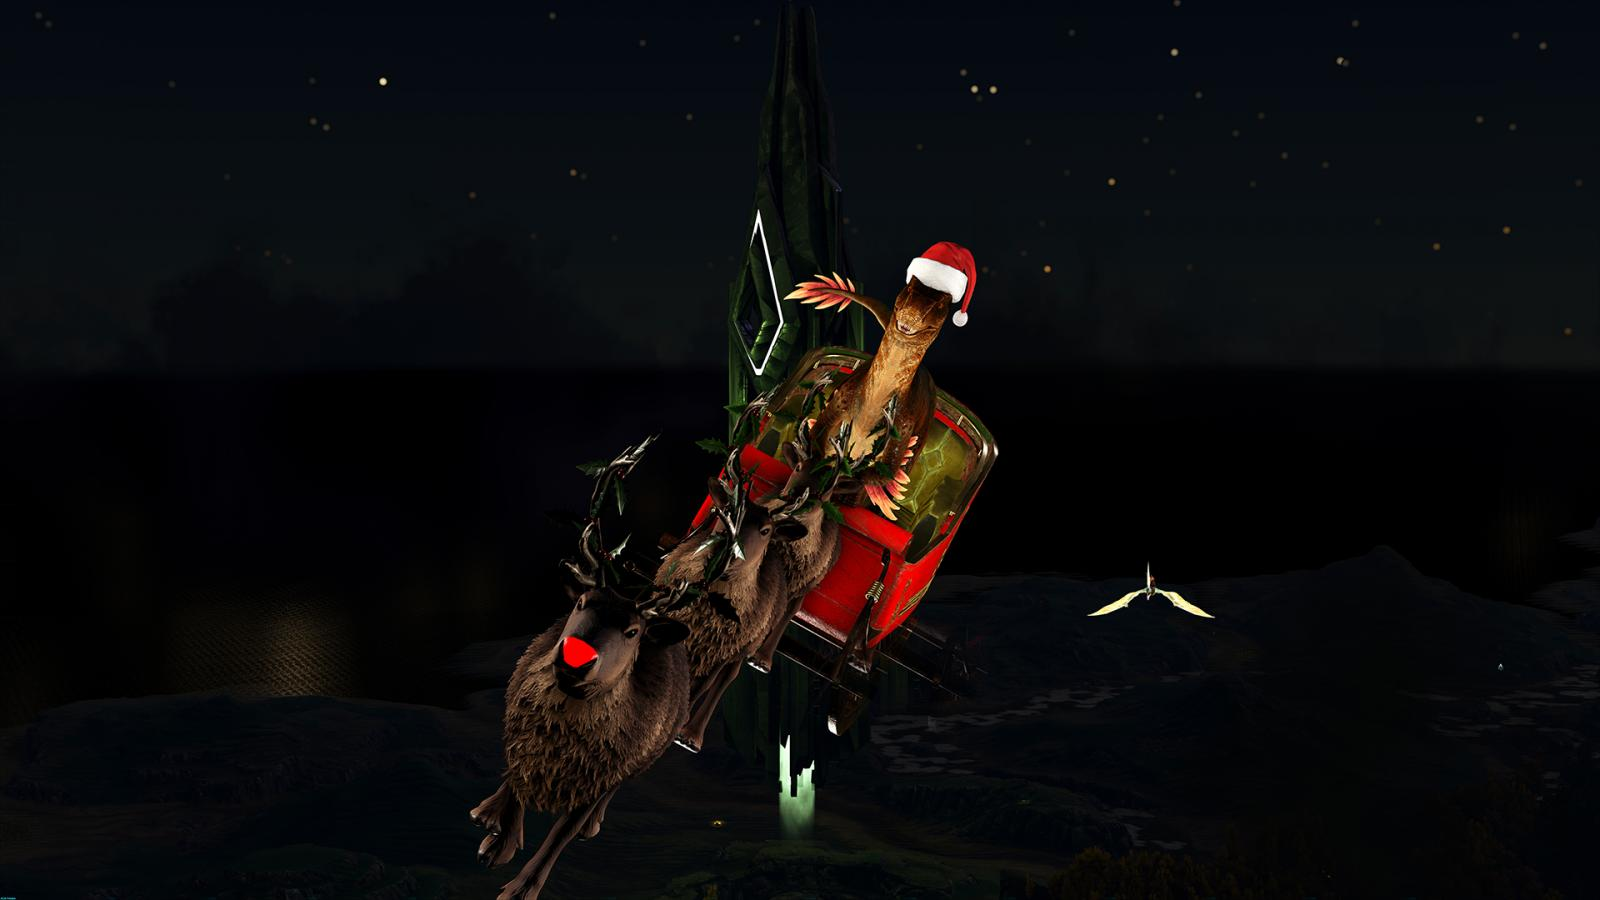 Raptor Claus Is Coming To Town! - GravesAJ - Freeform.jpg